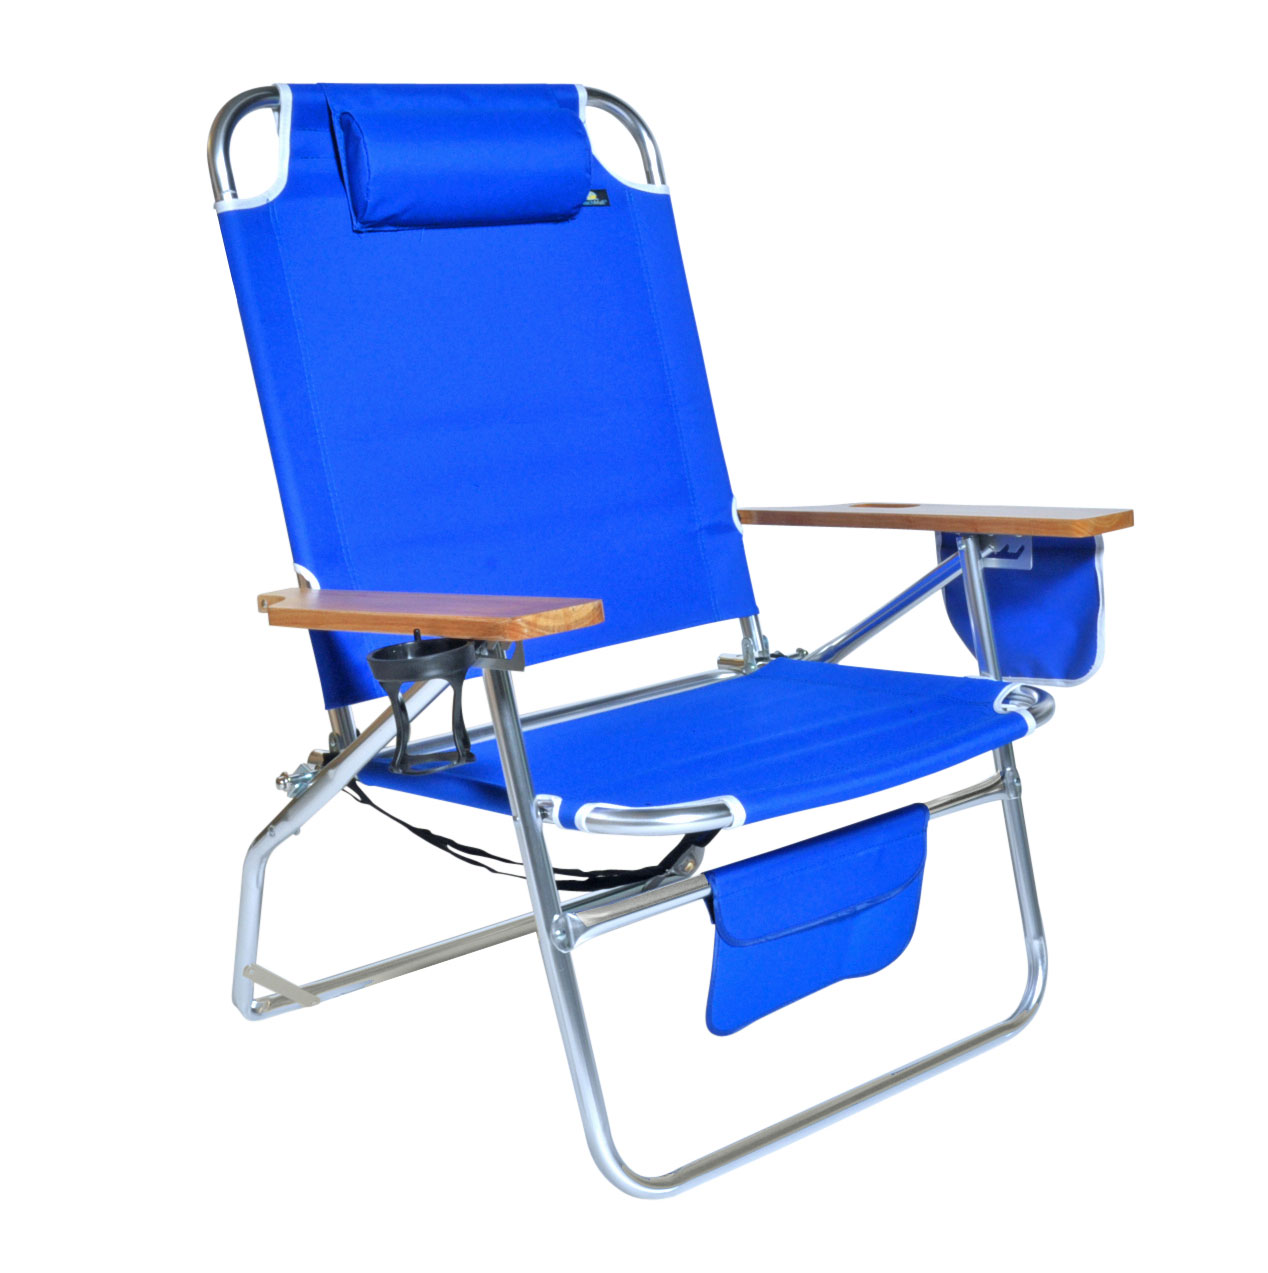 Big-Jumbo-Heavy-Duty-500-lbs-XL-Aluminum-  sc 1 st  eBay & Big Jumbo Heavy Duty 500 lbs XL Aluminum Beach Chair for Big u0026 Tall ...